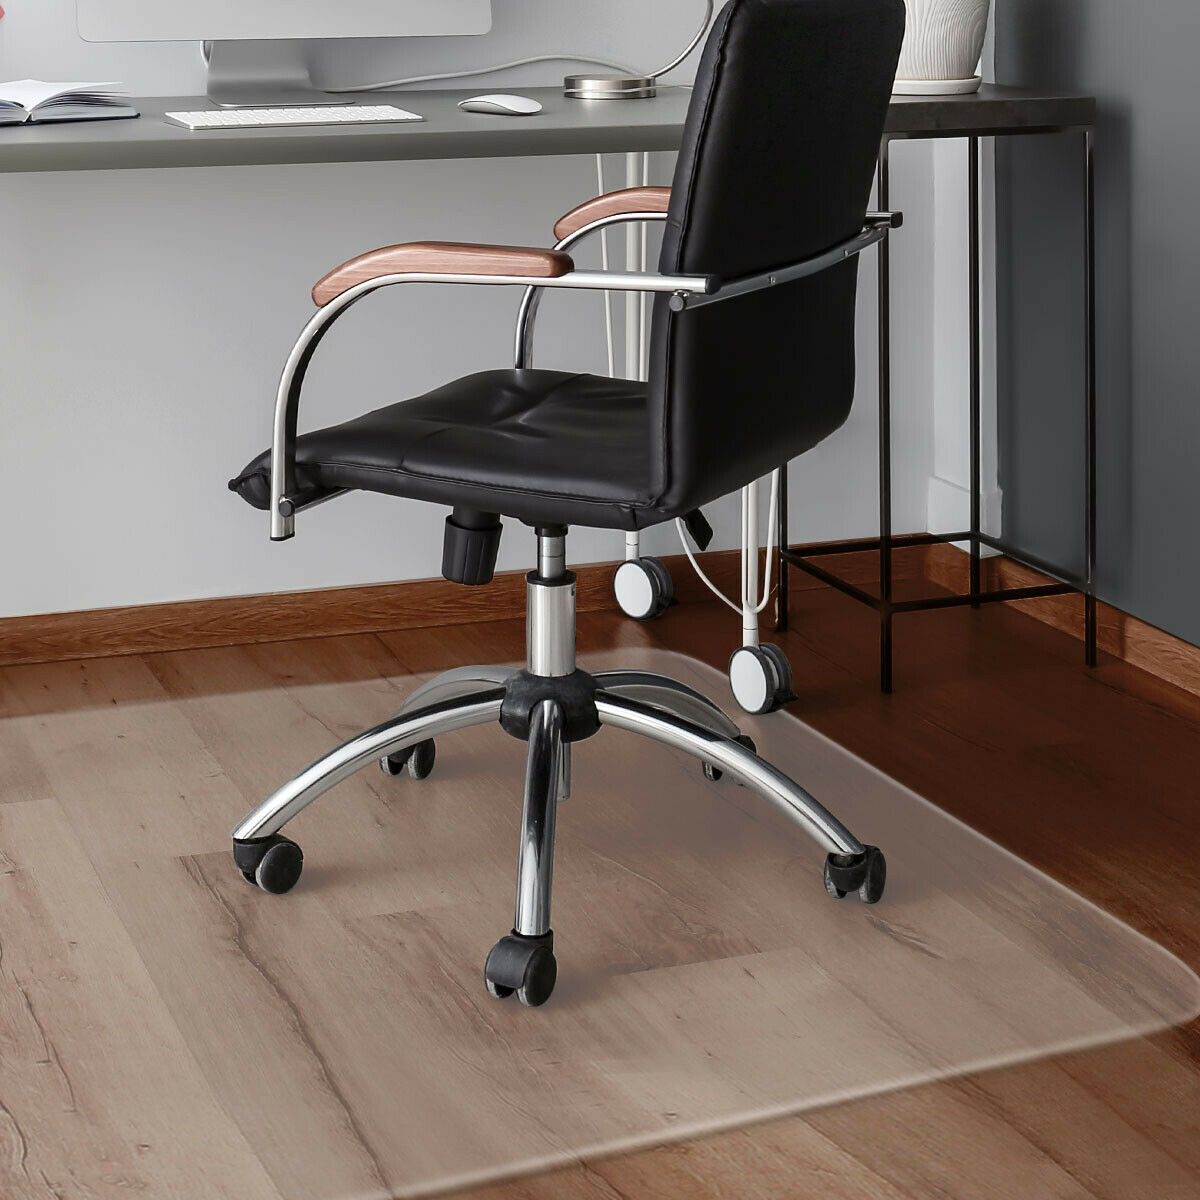 Costway 47'' X 59'' PVC Chair Floor Mat Home Office Protector For Hard Wood Floors